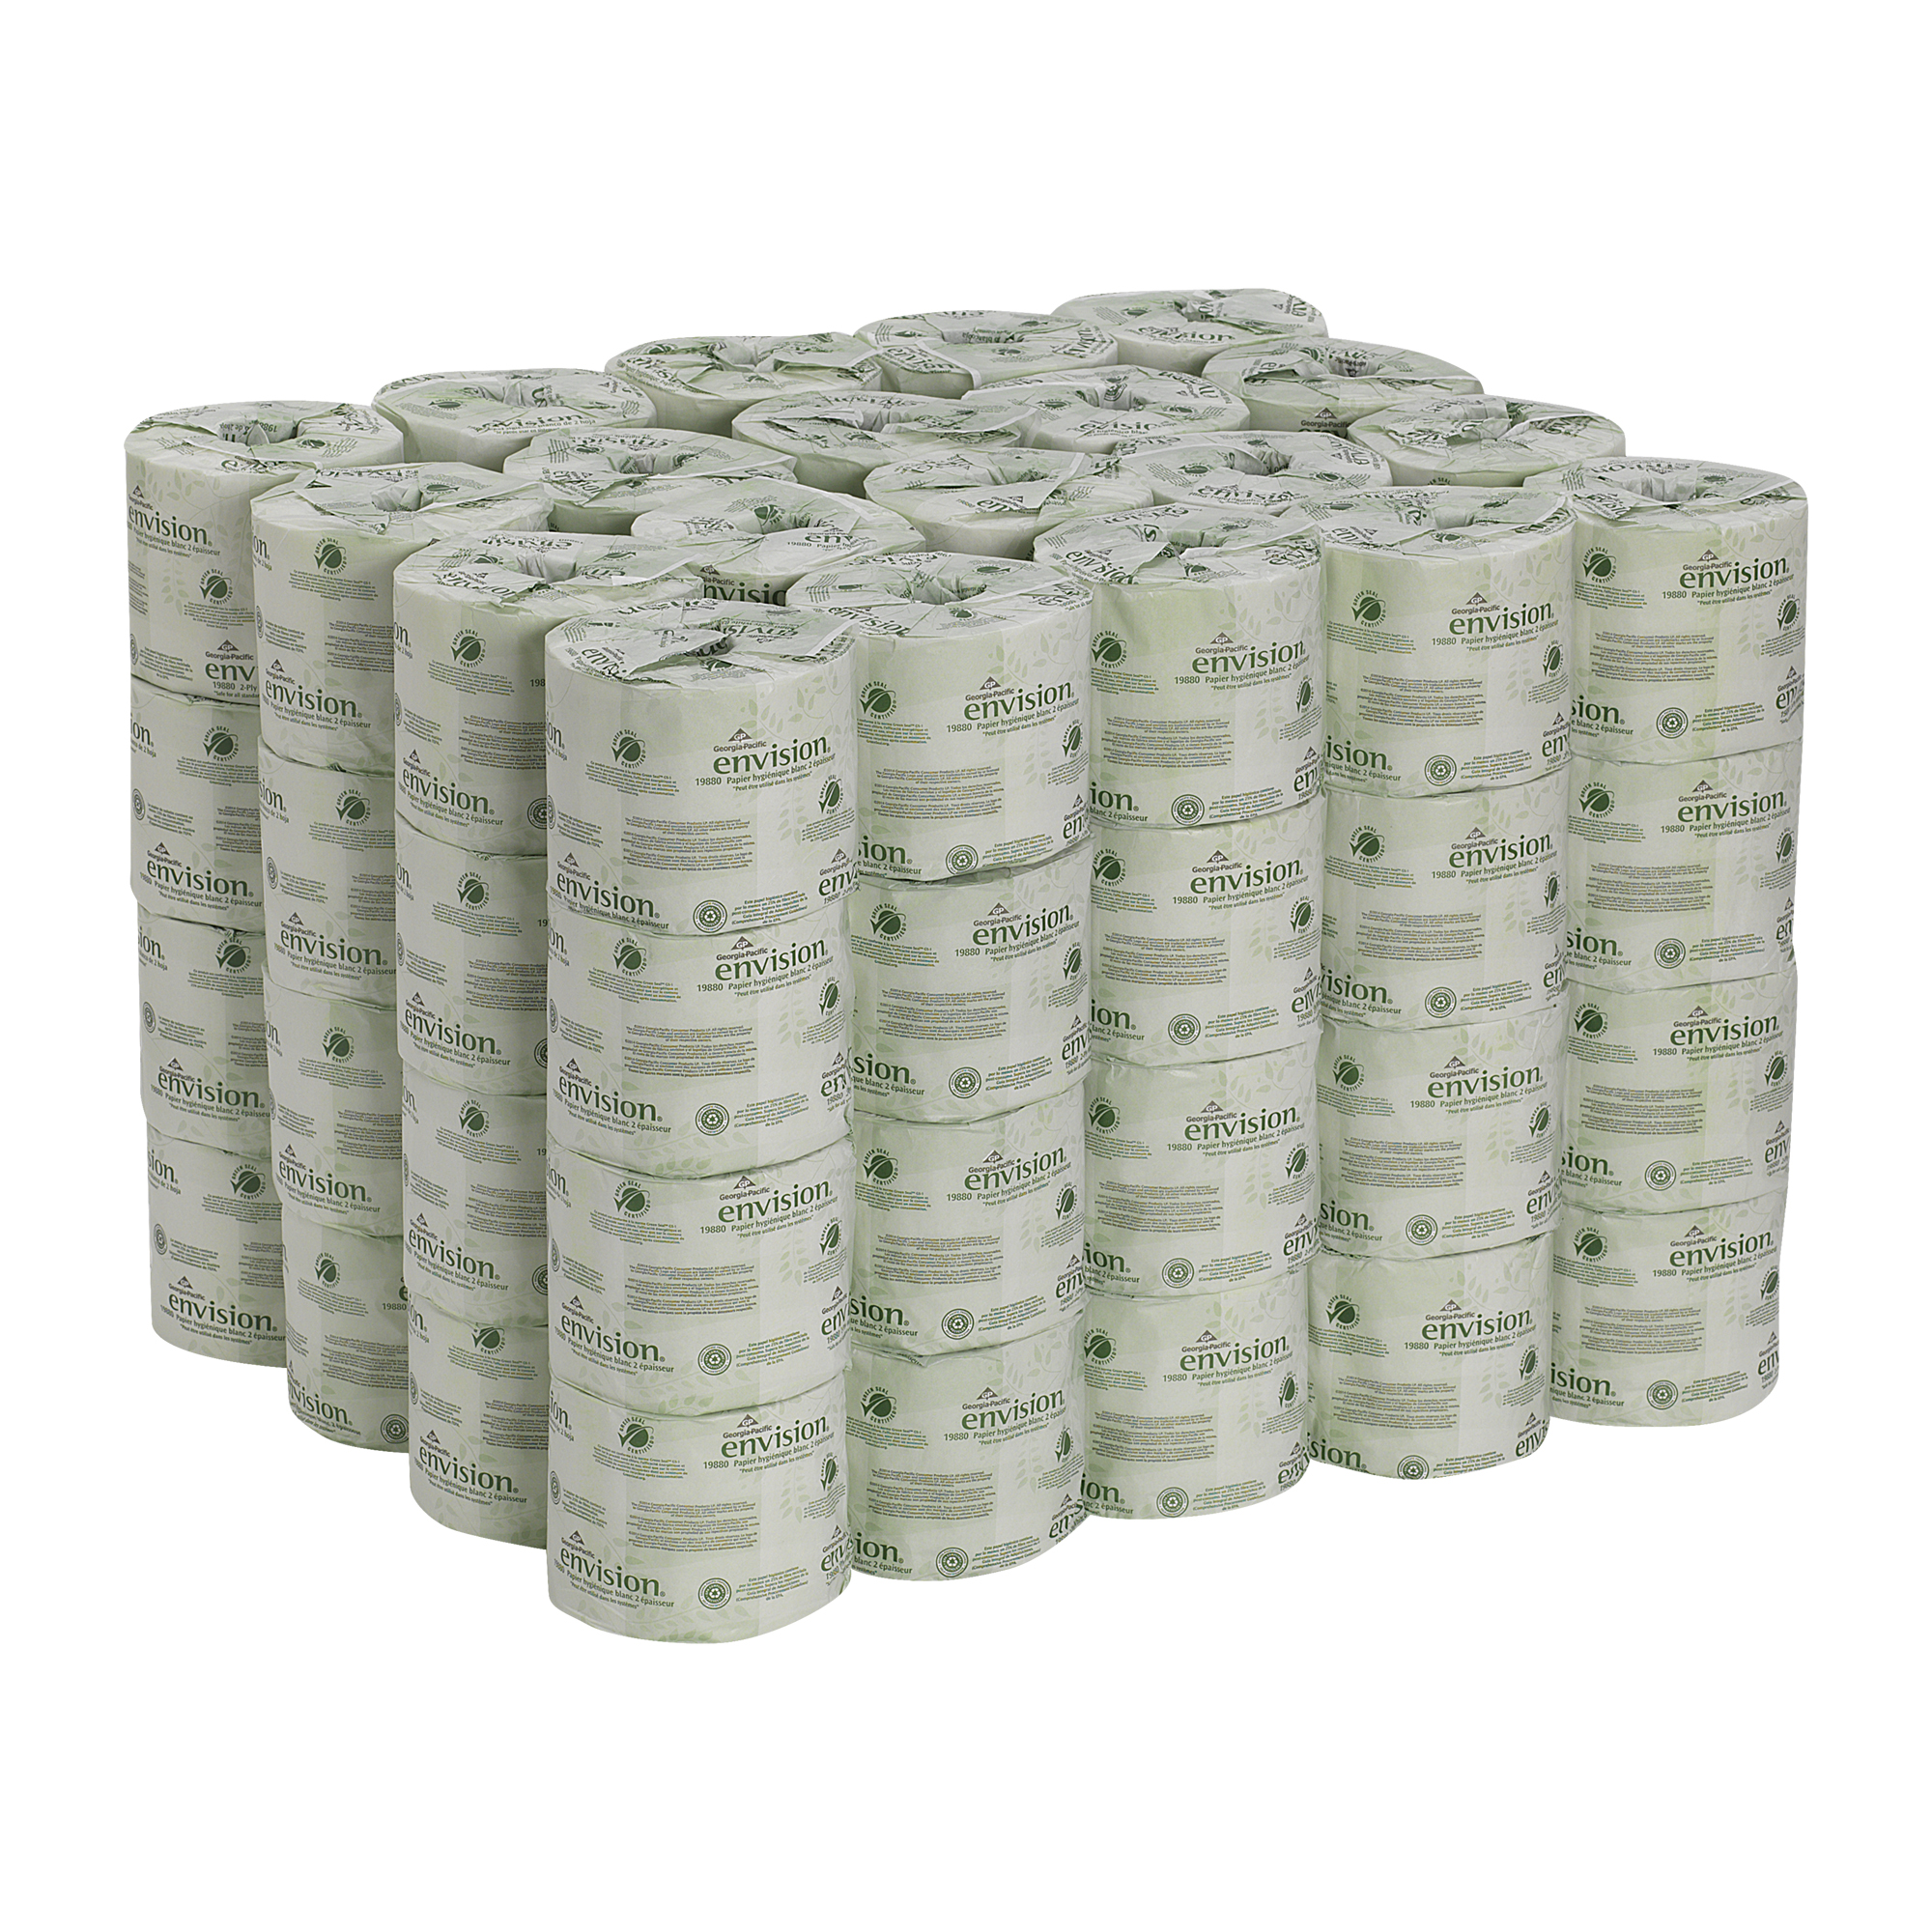 Envision® (19880/01) 2-Ply Toilet Paper by Georgia Pacific, White, 550 Sheets Per Roll, 80 Rolls Per Case